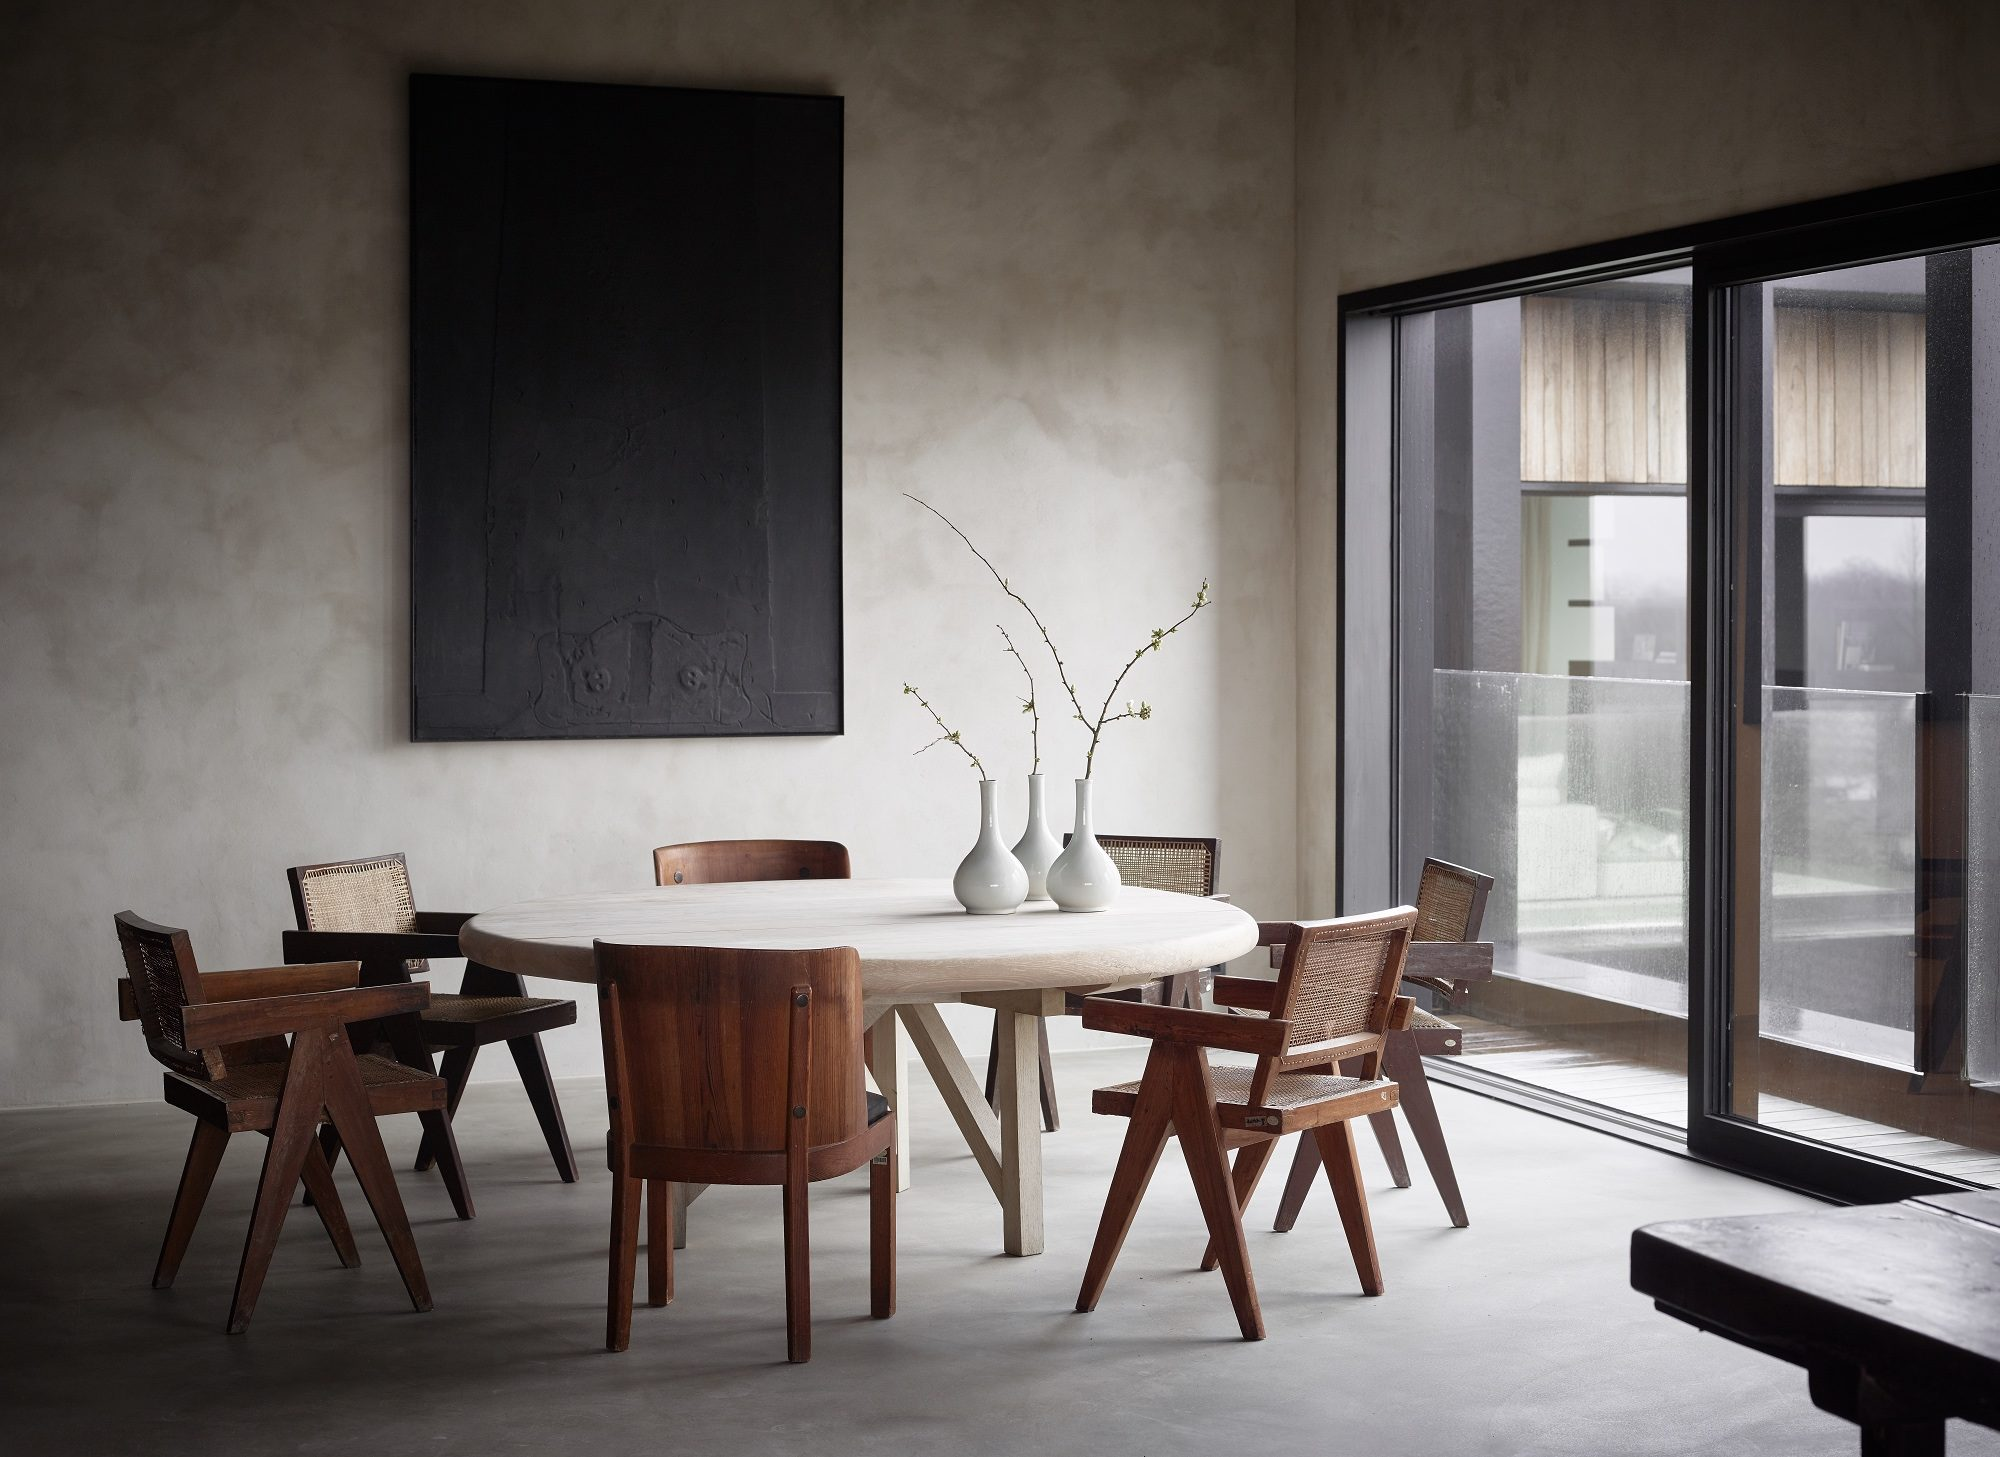 Round dining table designed by axel vervoordt with white korean porcelain and 1950s cane office chairs by pierre jeanneret